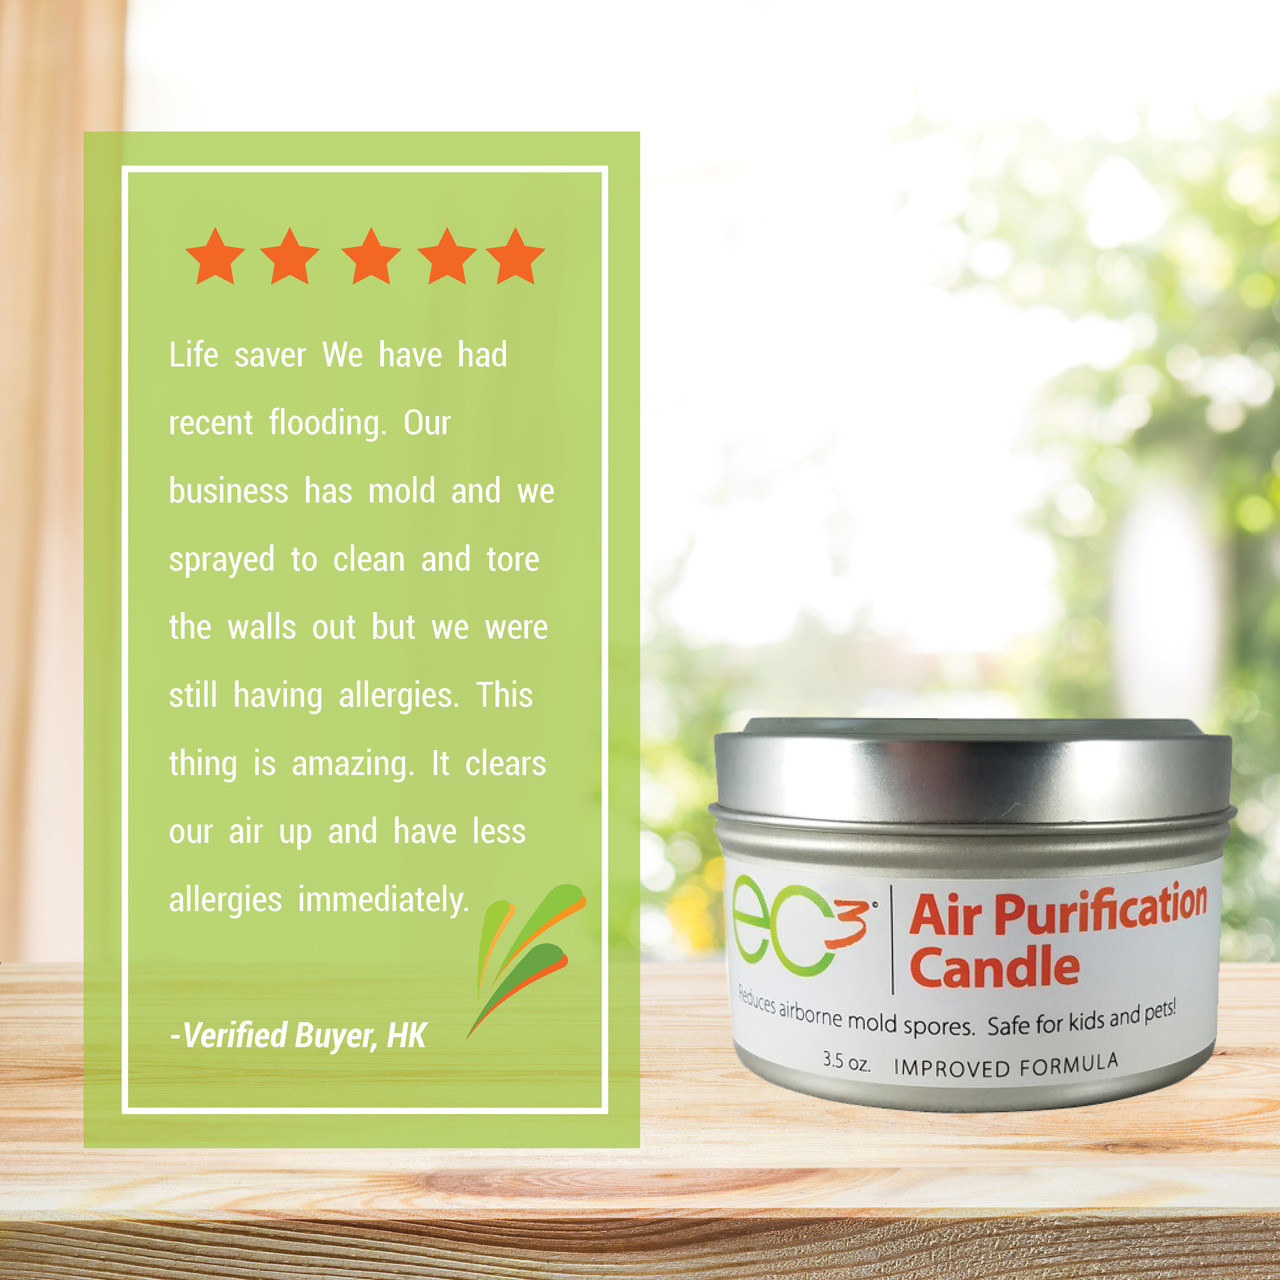 EC3 Air Purification Candle